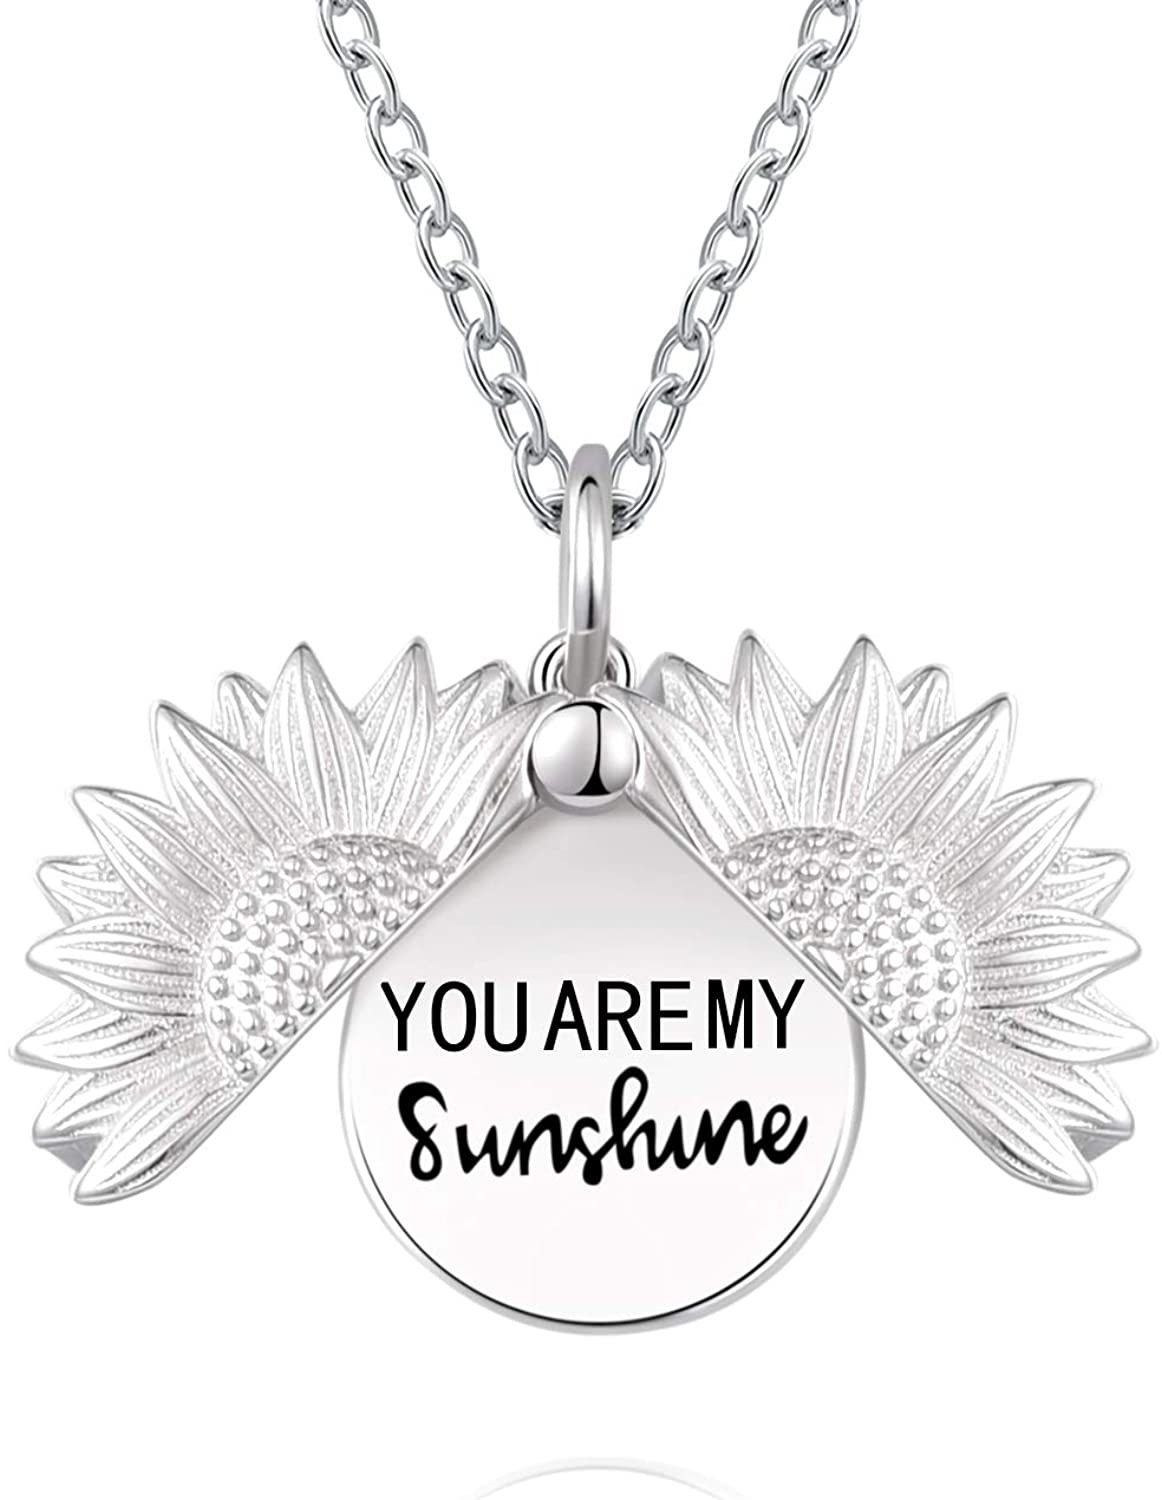 You are My Sunshine Stamped Sunflower Necklace Locket 925 Sterling Silver Pendant Necklace for Women Girls